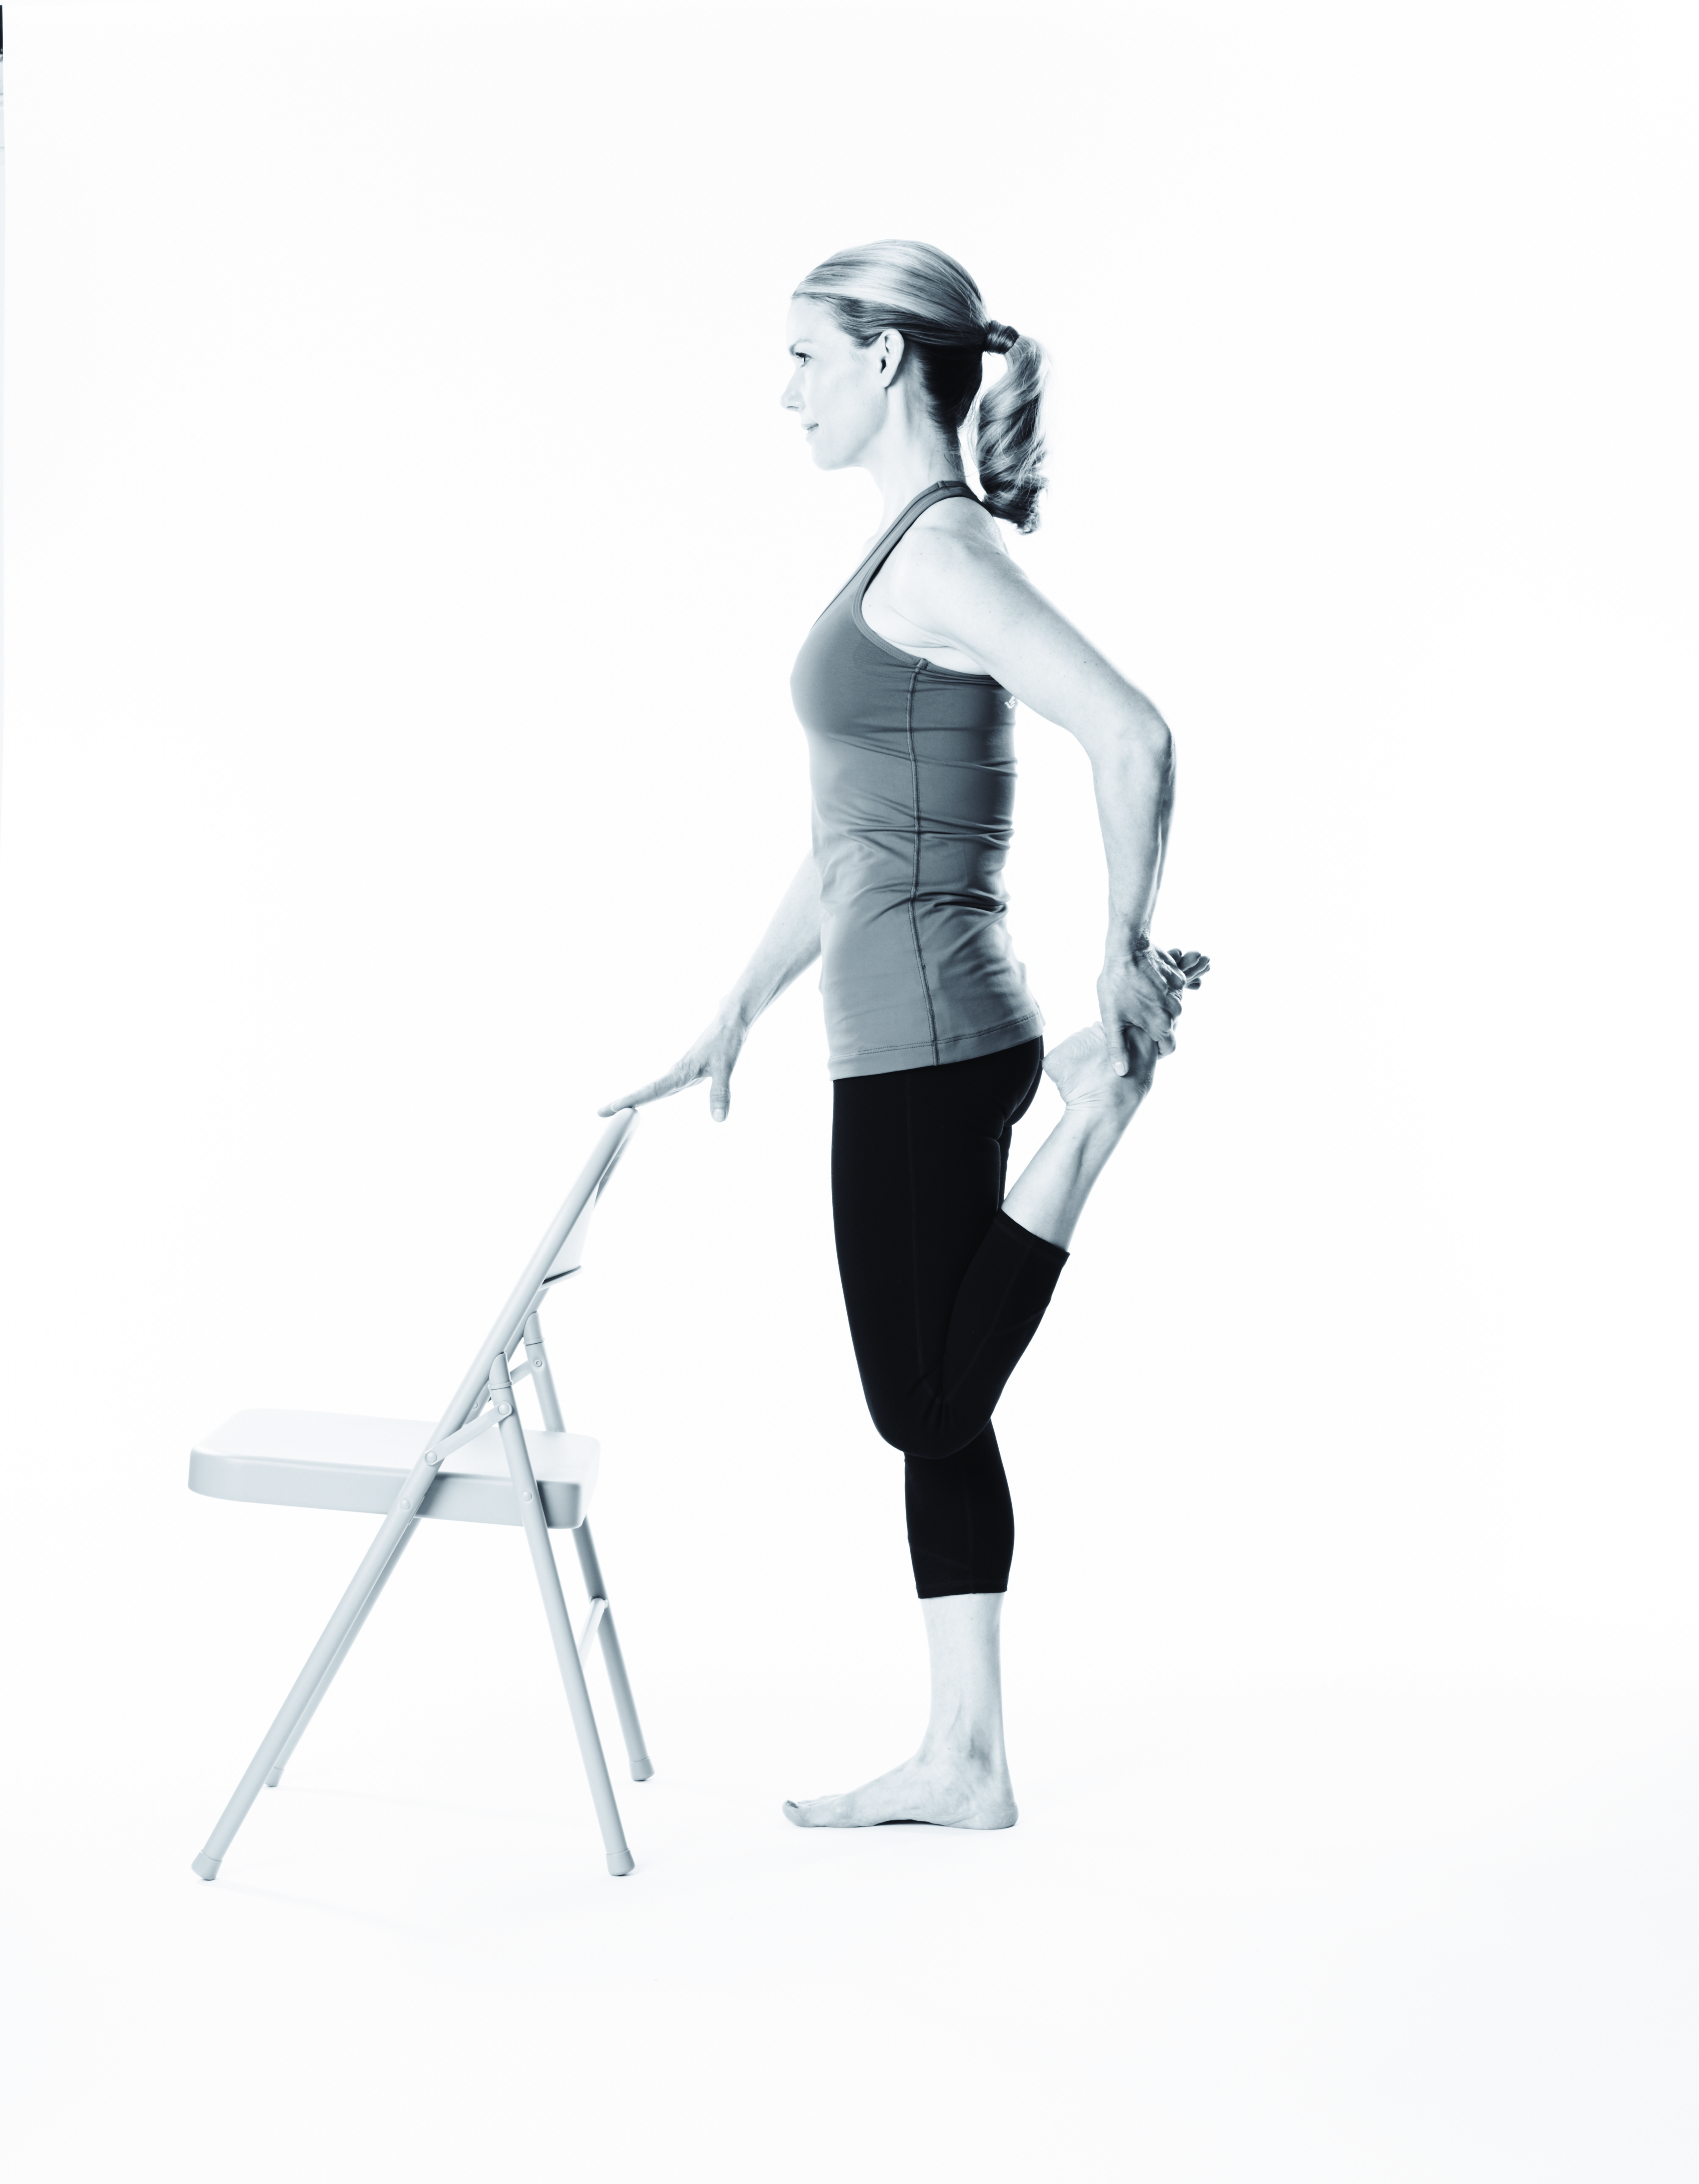 Seated Yoga Mile High Asanas in the Sky Healing Lifestyles